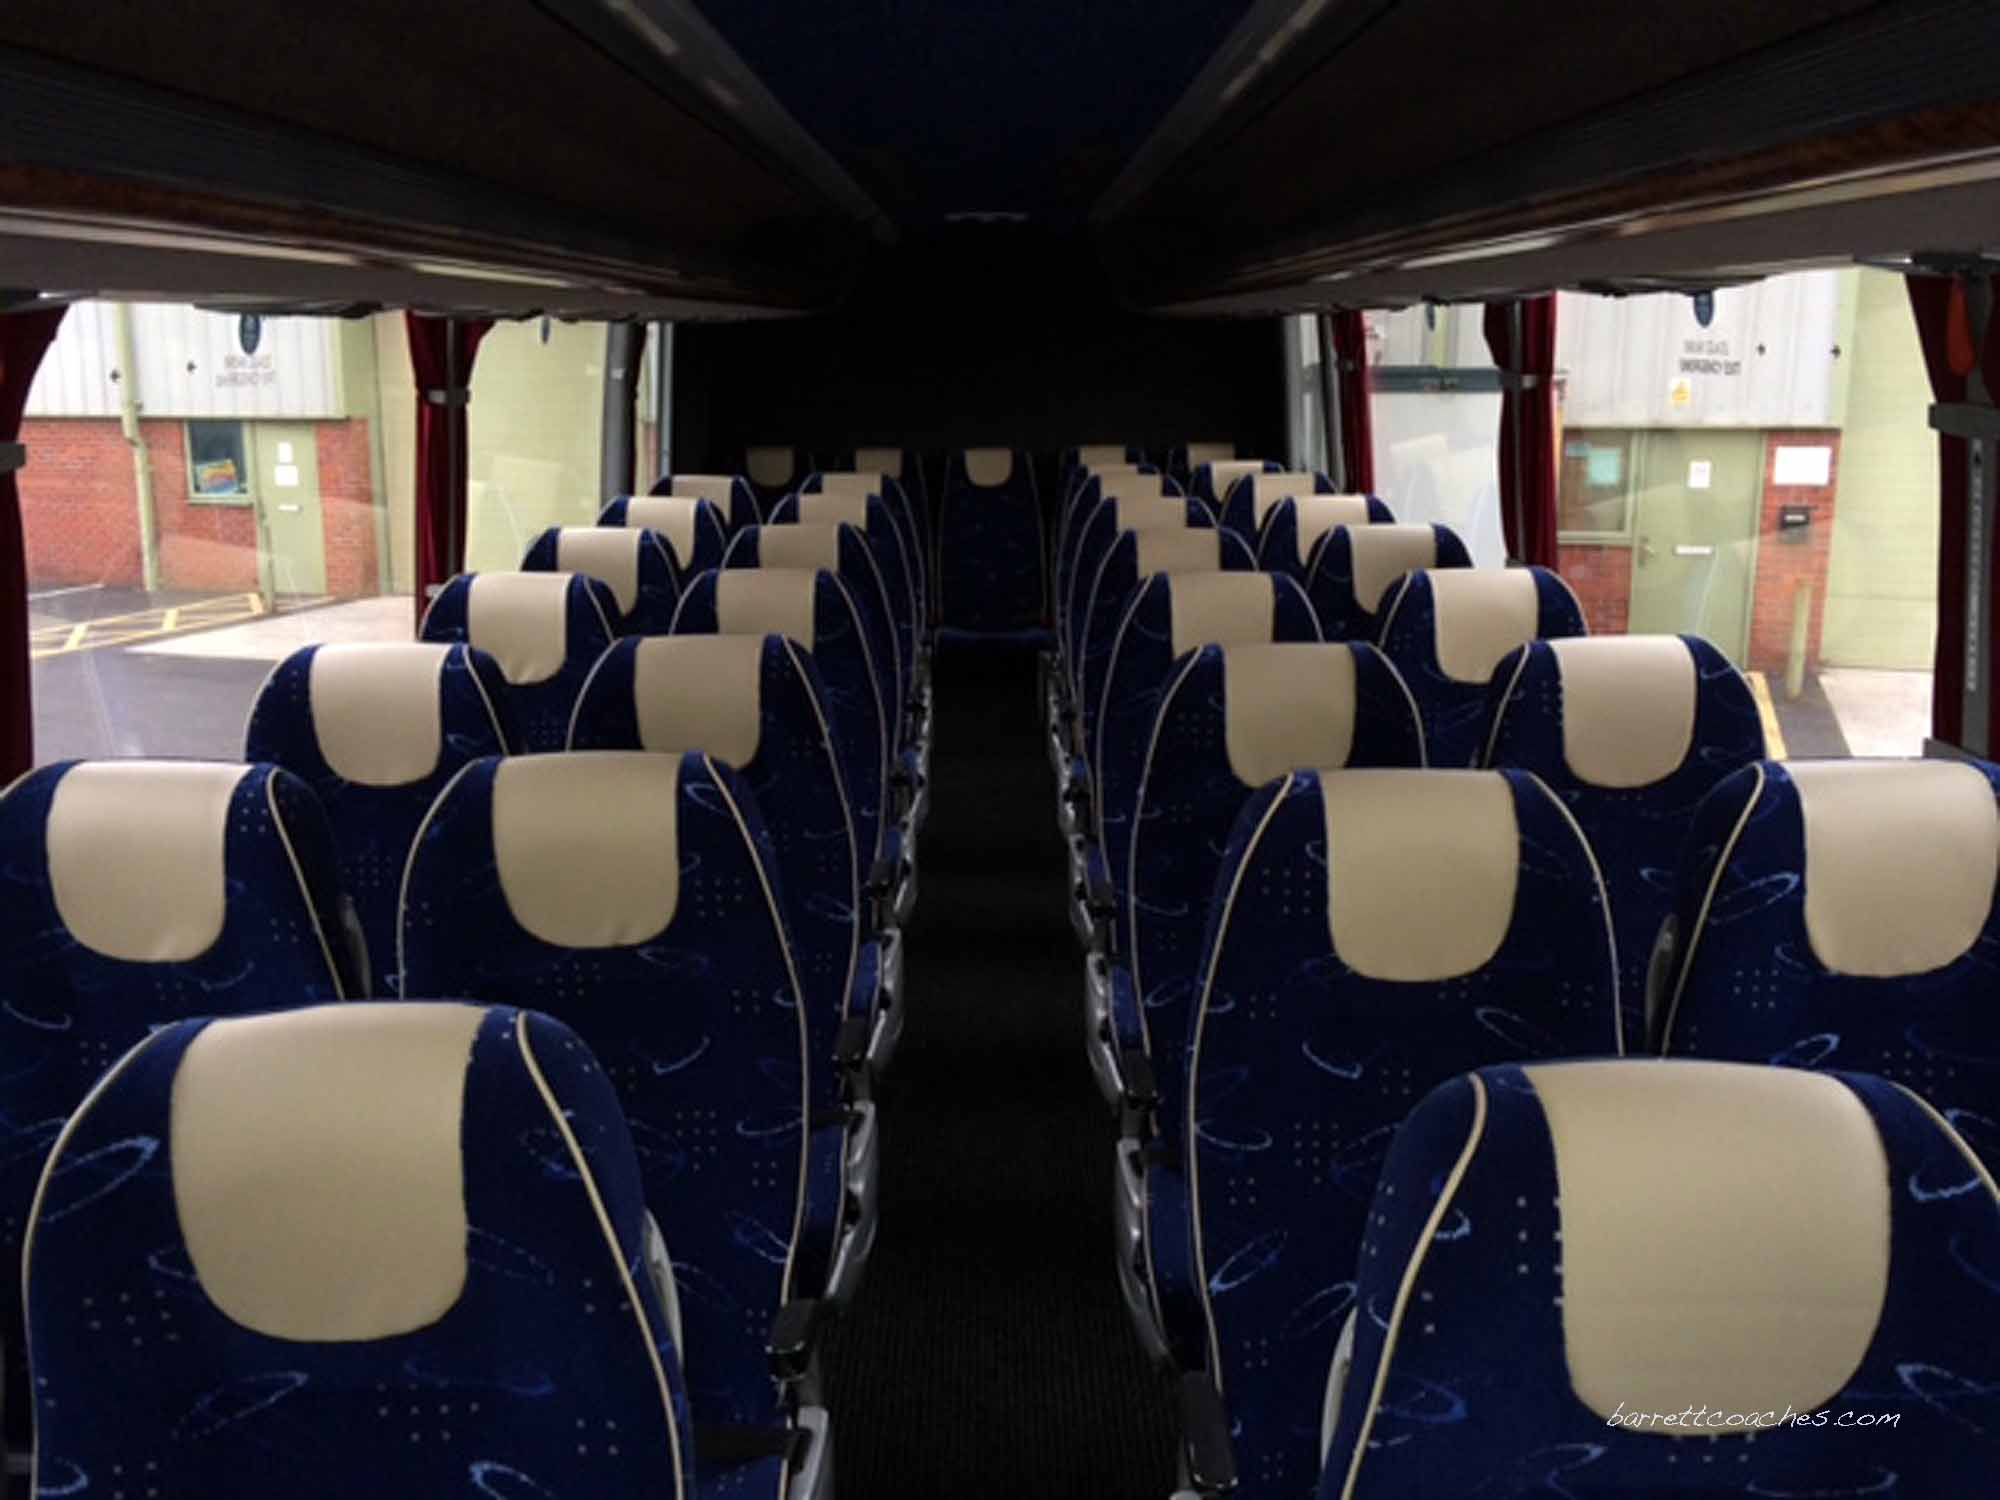 Barrett Coaches 53 seater interior